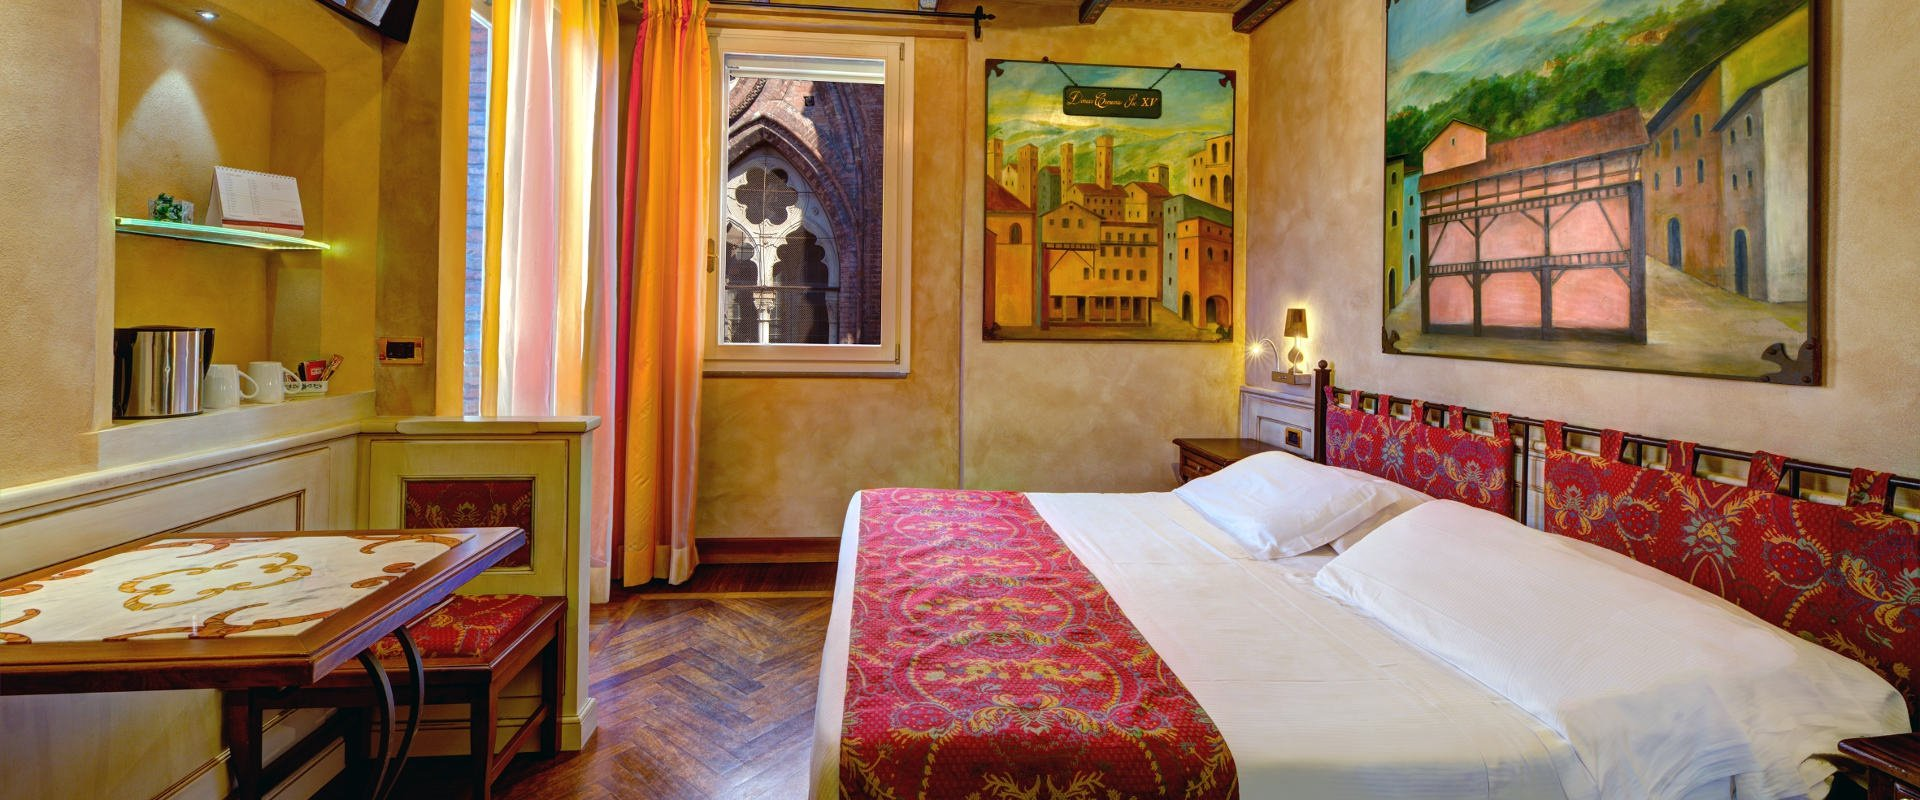 Unique rooms  art hotel commercianti bologna